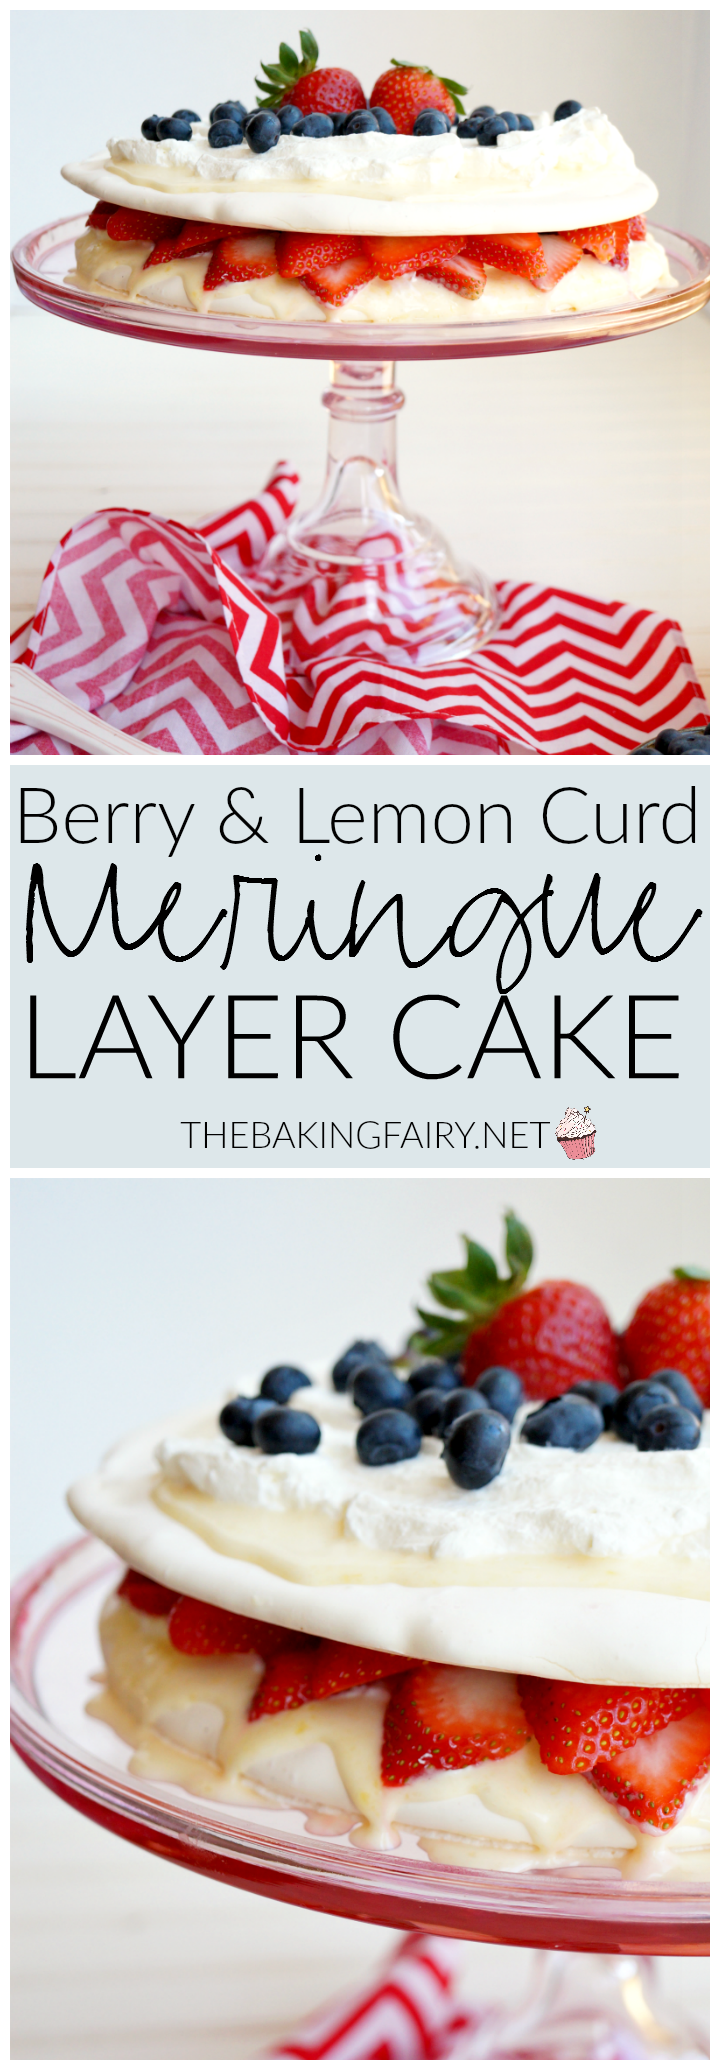 berry & lemon curd meringue cake | The Baking Fairy